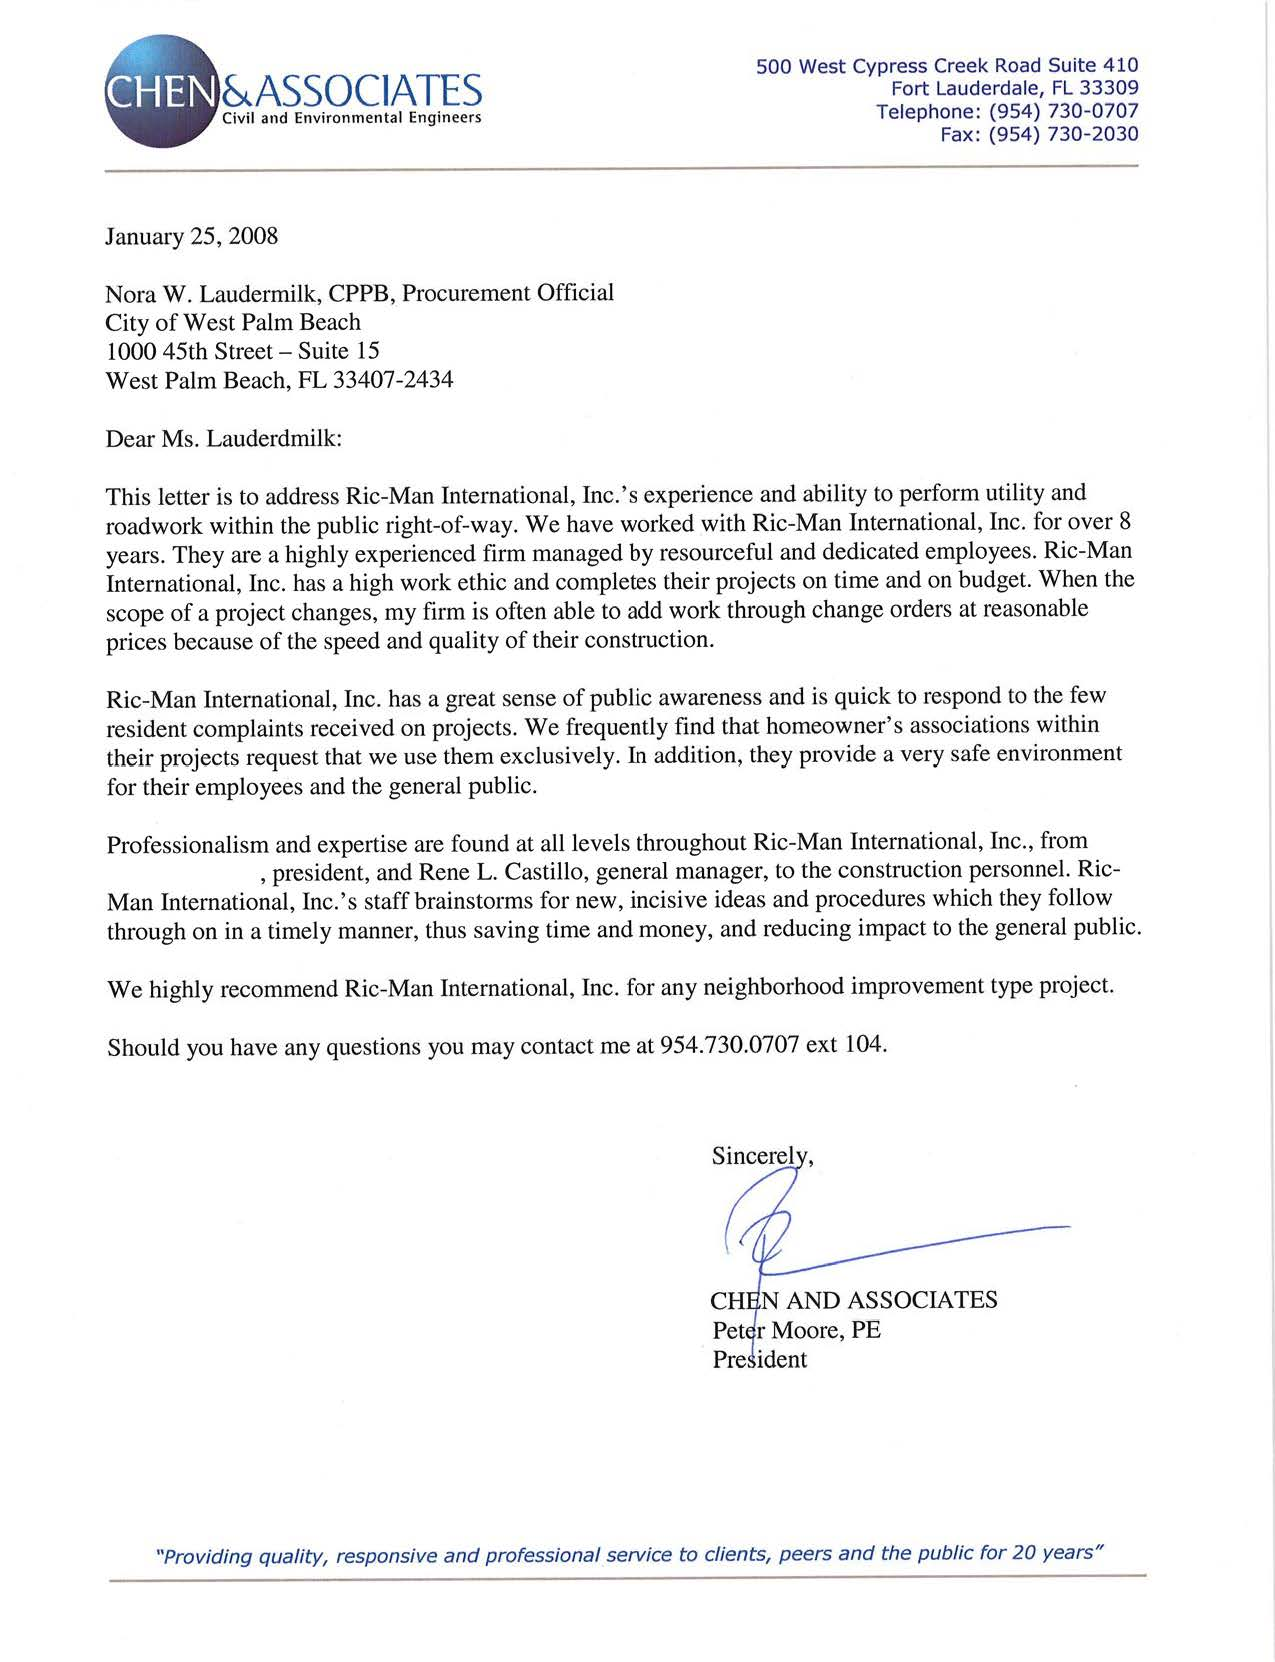 Click here to view the letter from Chen & Associates